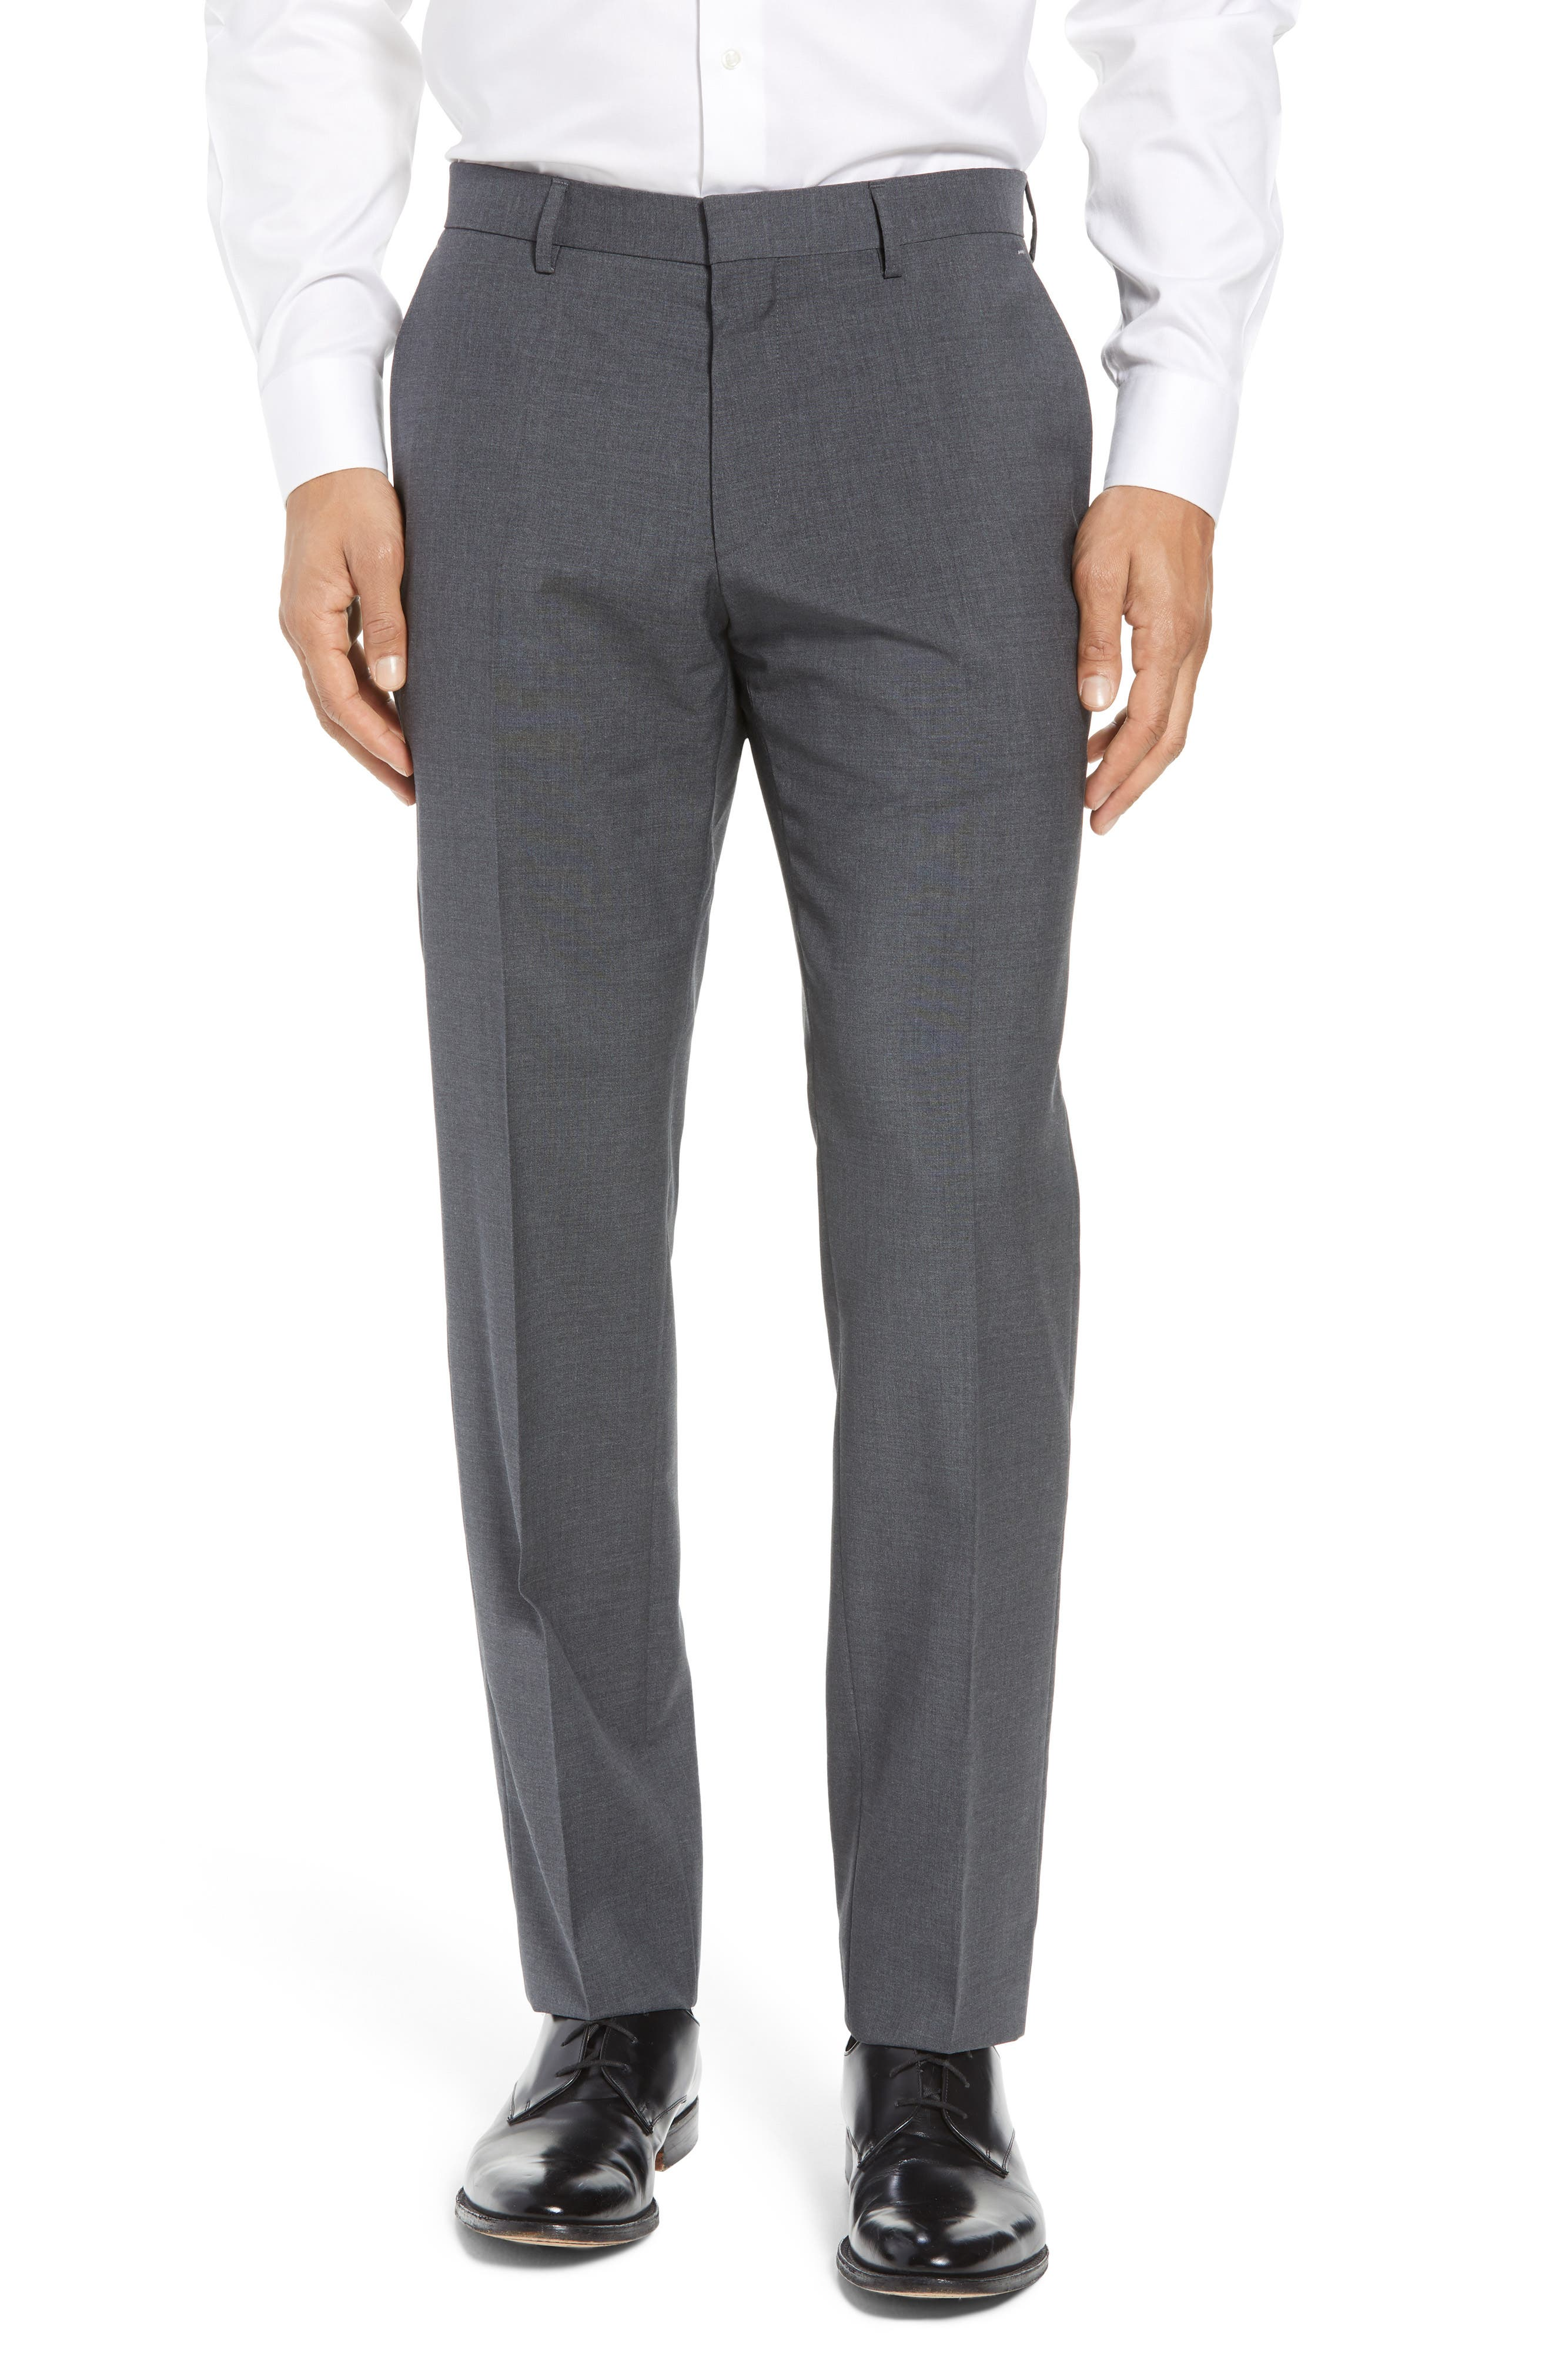 Genesis Flat Front Trim Fit Wool Trousers,                             Main thumbnail 1, color,                             Charcoal